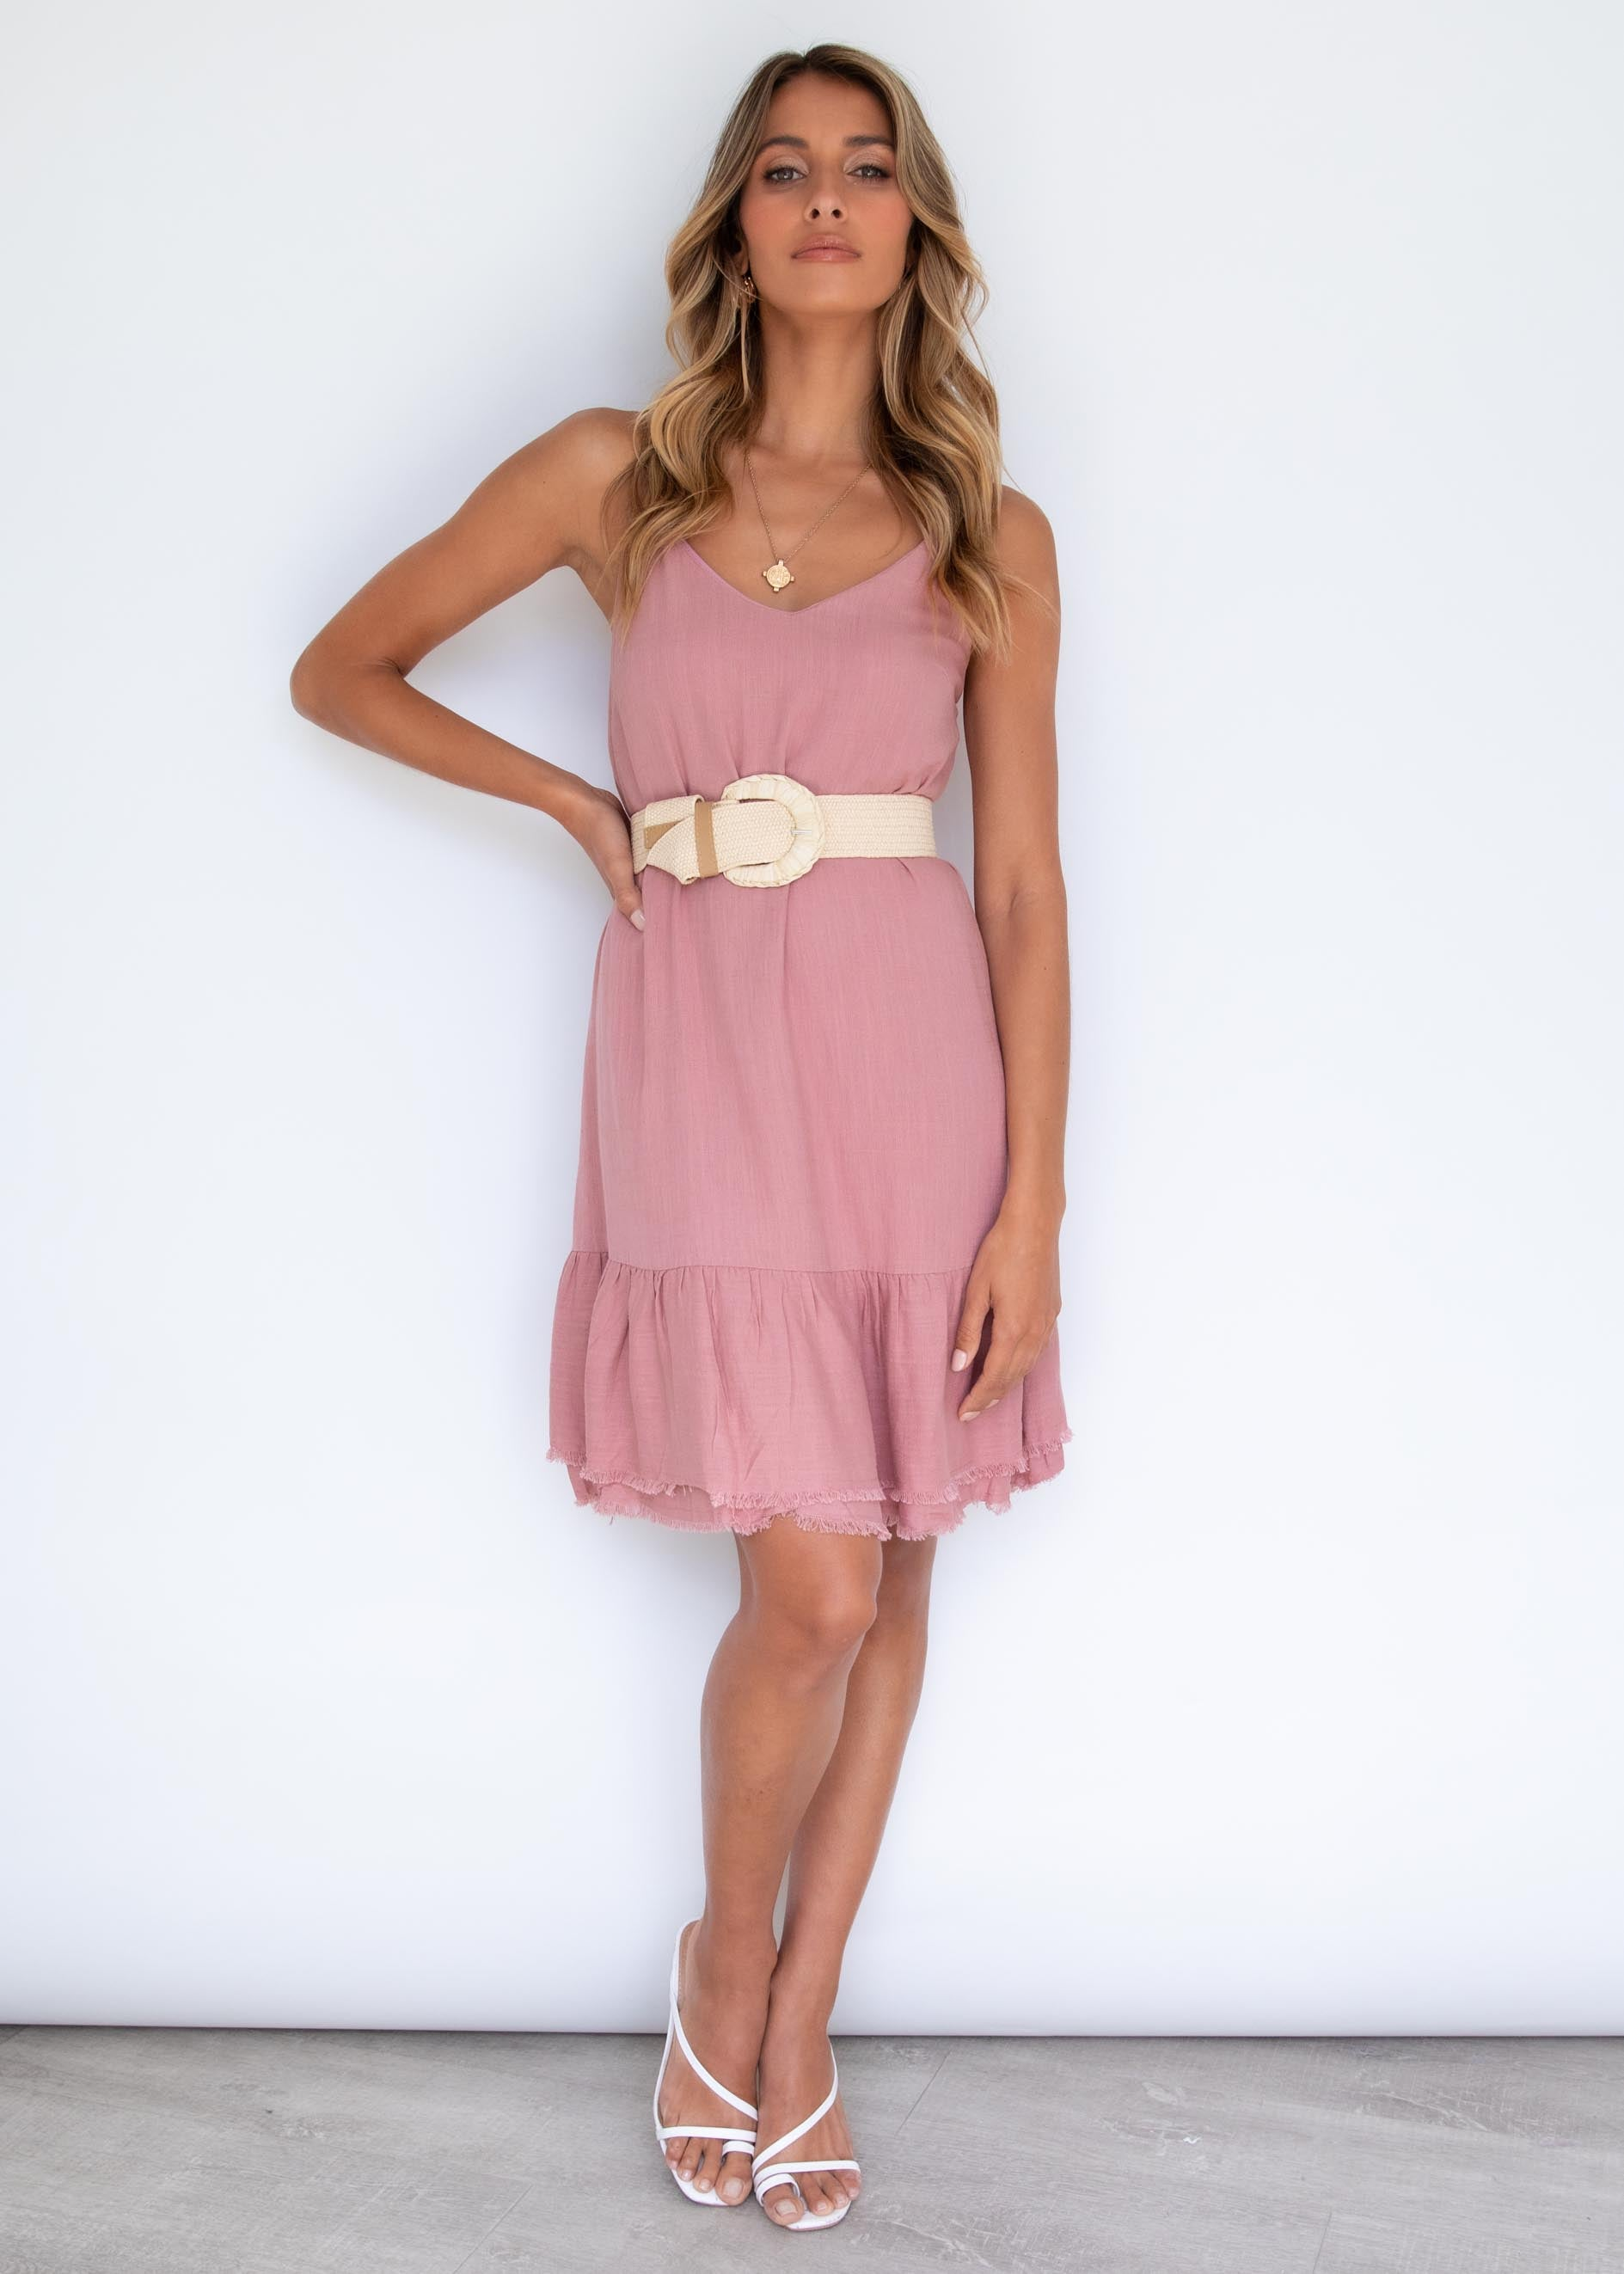 Andy Raw Linen Dress - Rose